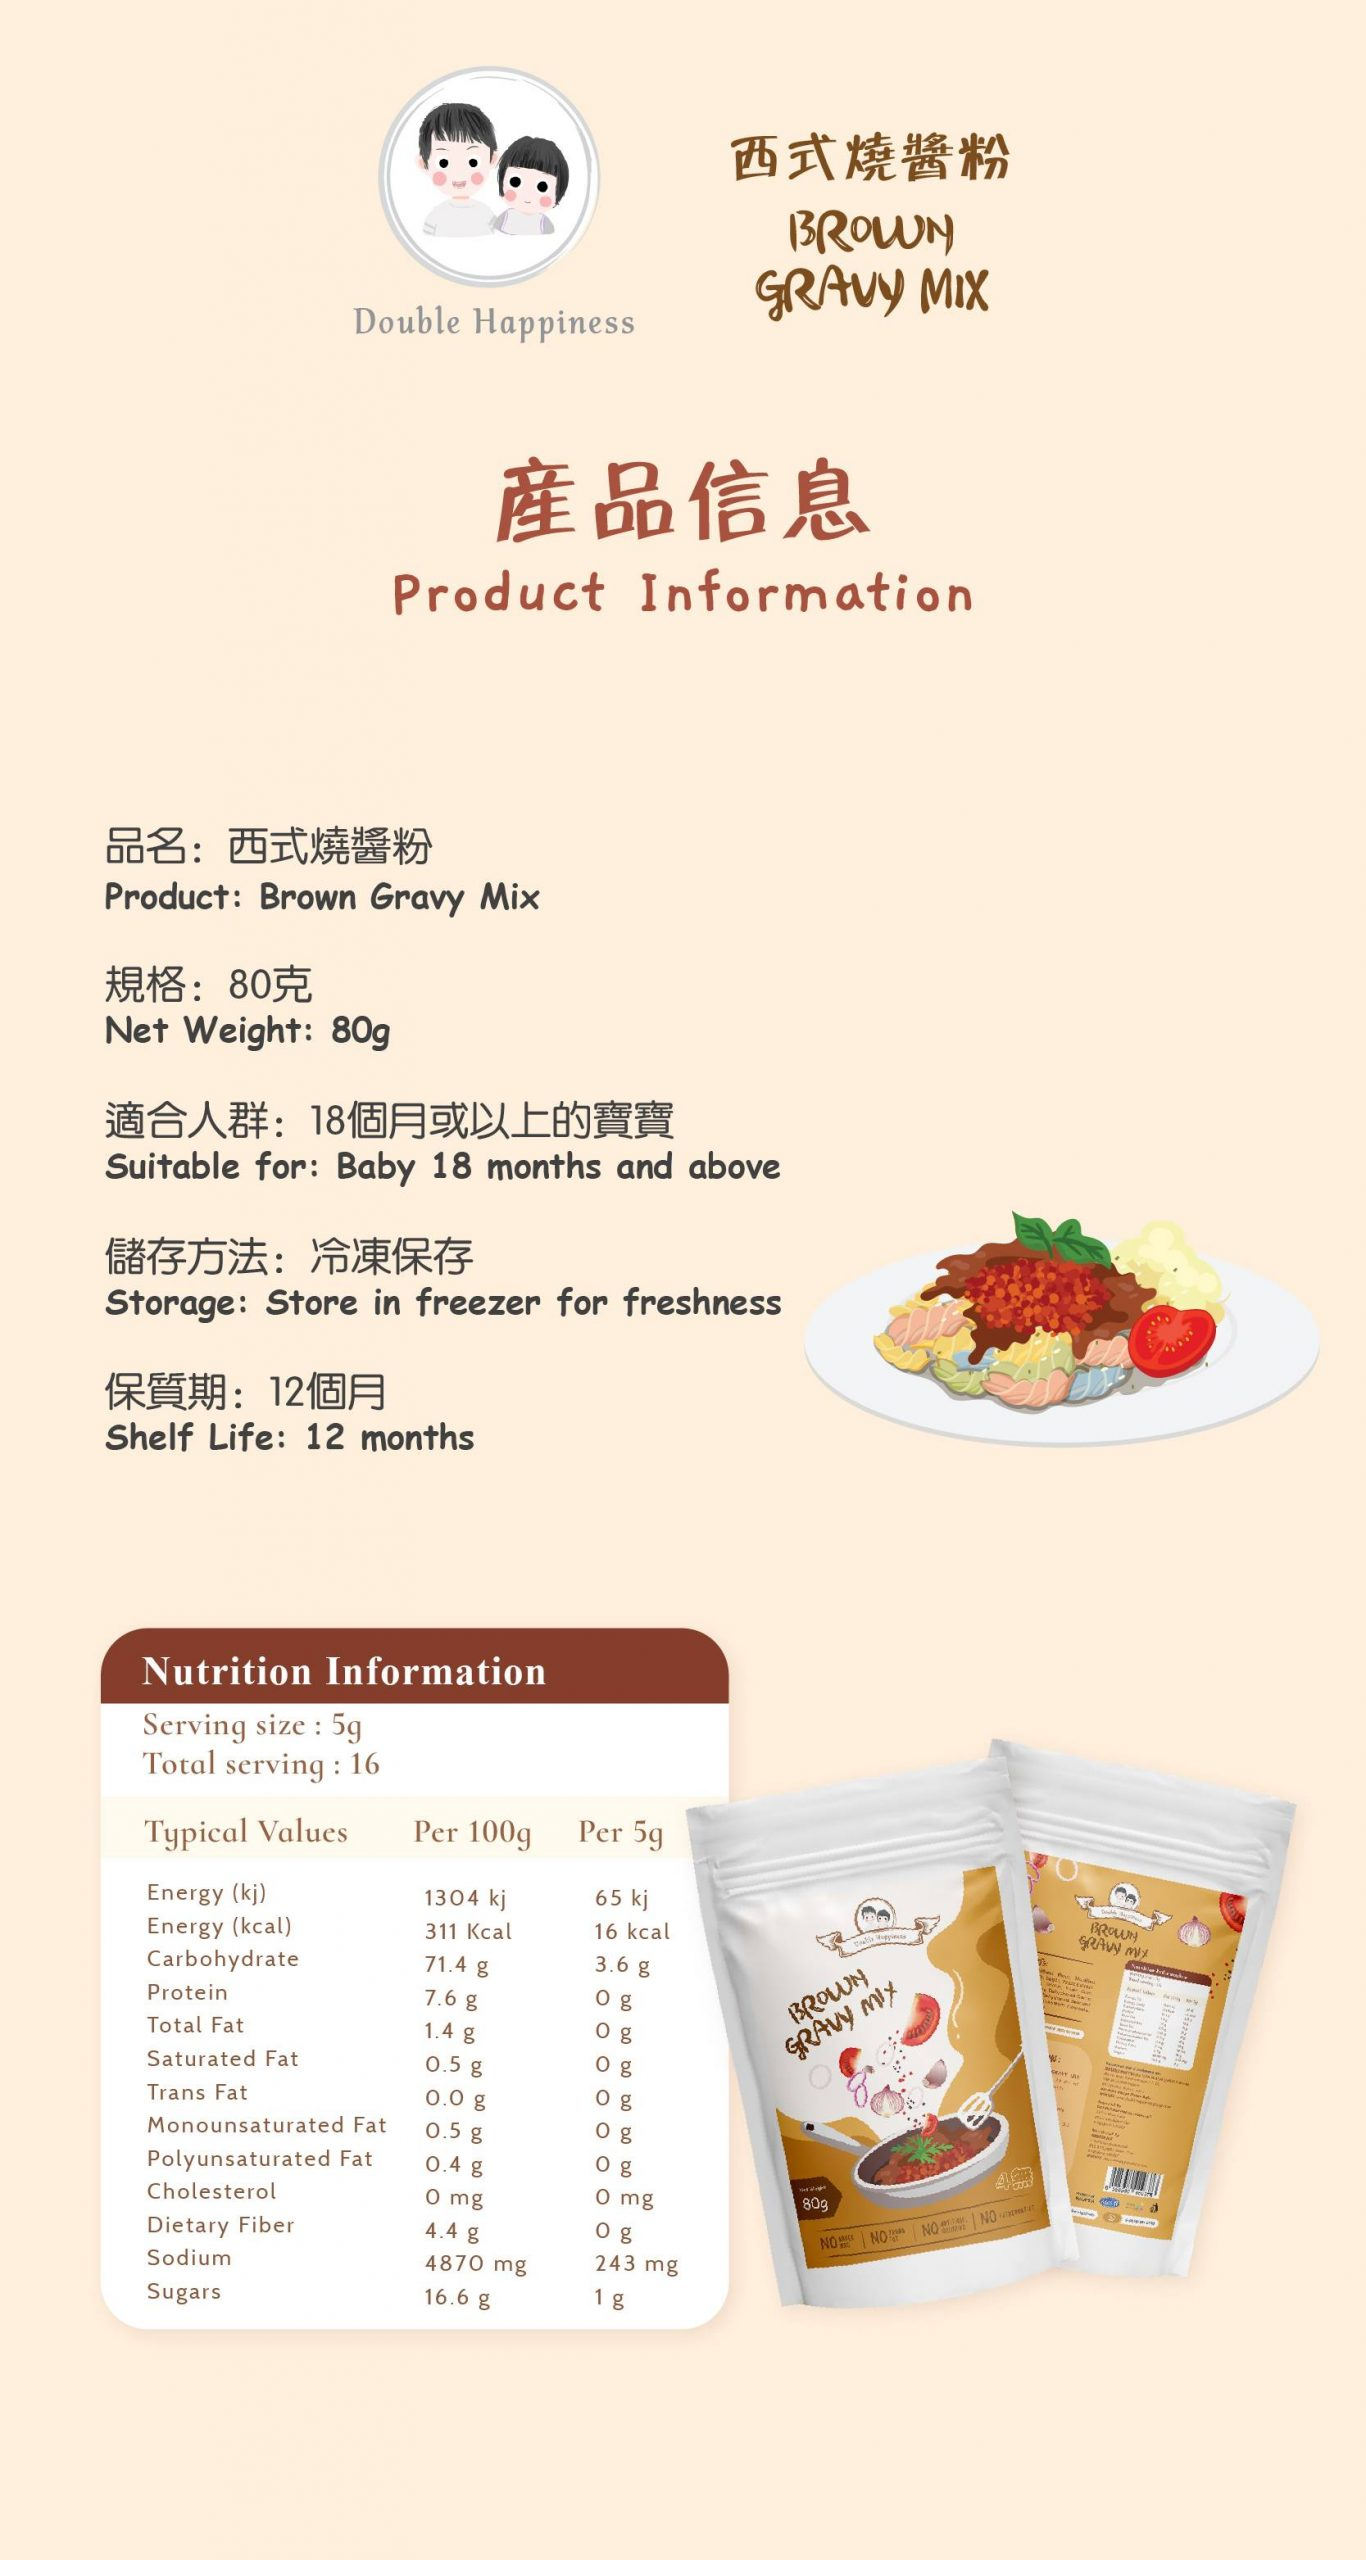 Natural baby food- Brown Gravy Mix product information